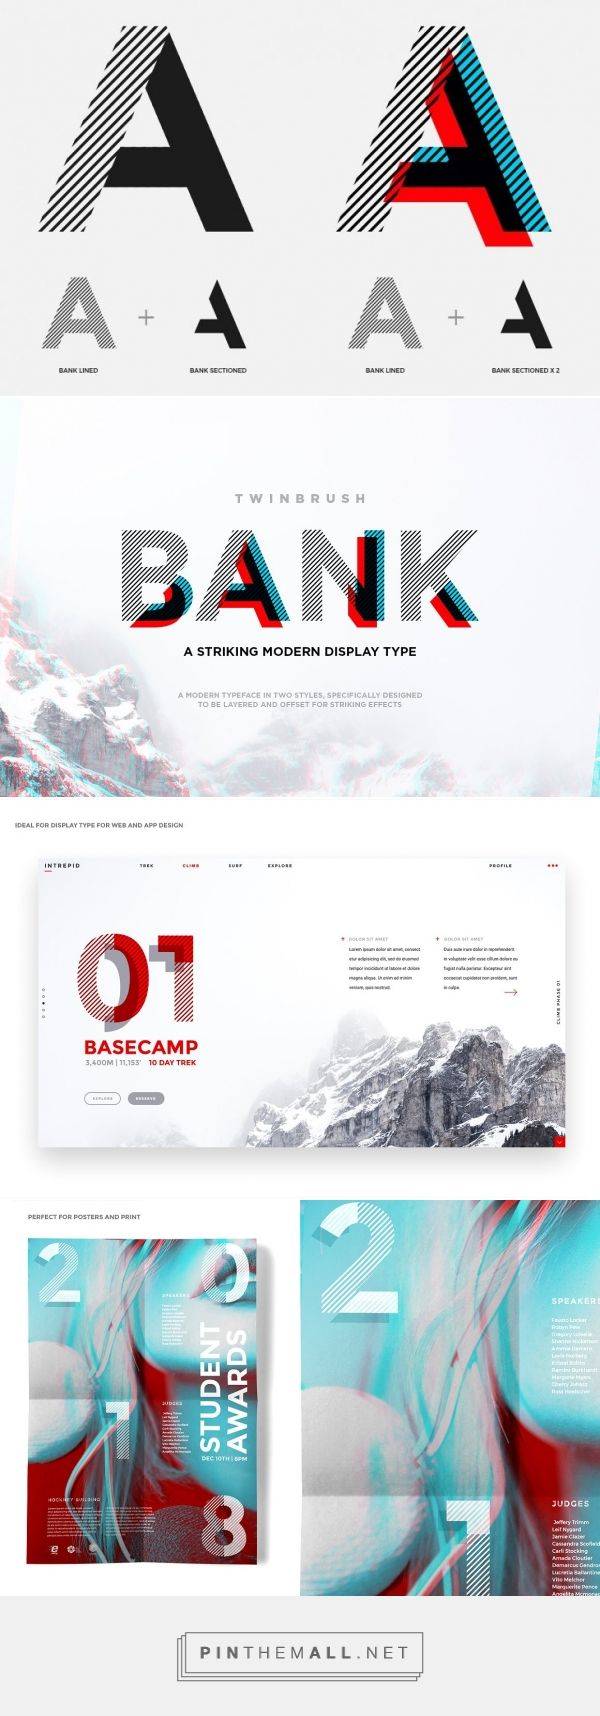 BANK by Twinbrush Image Forge